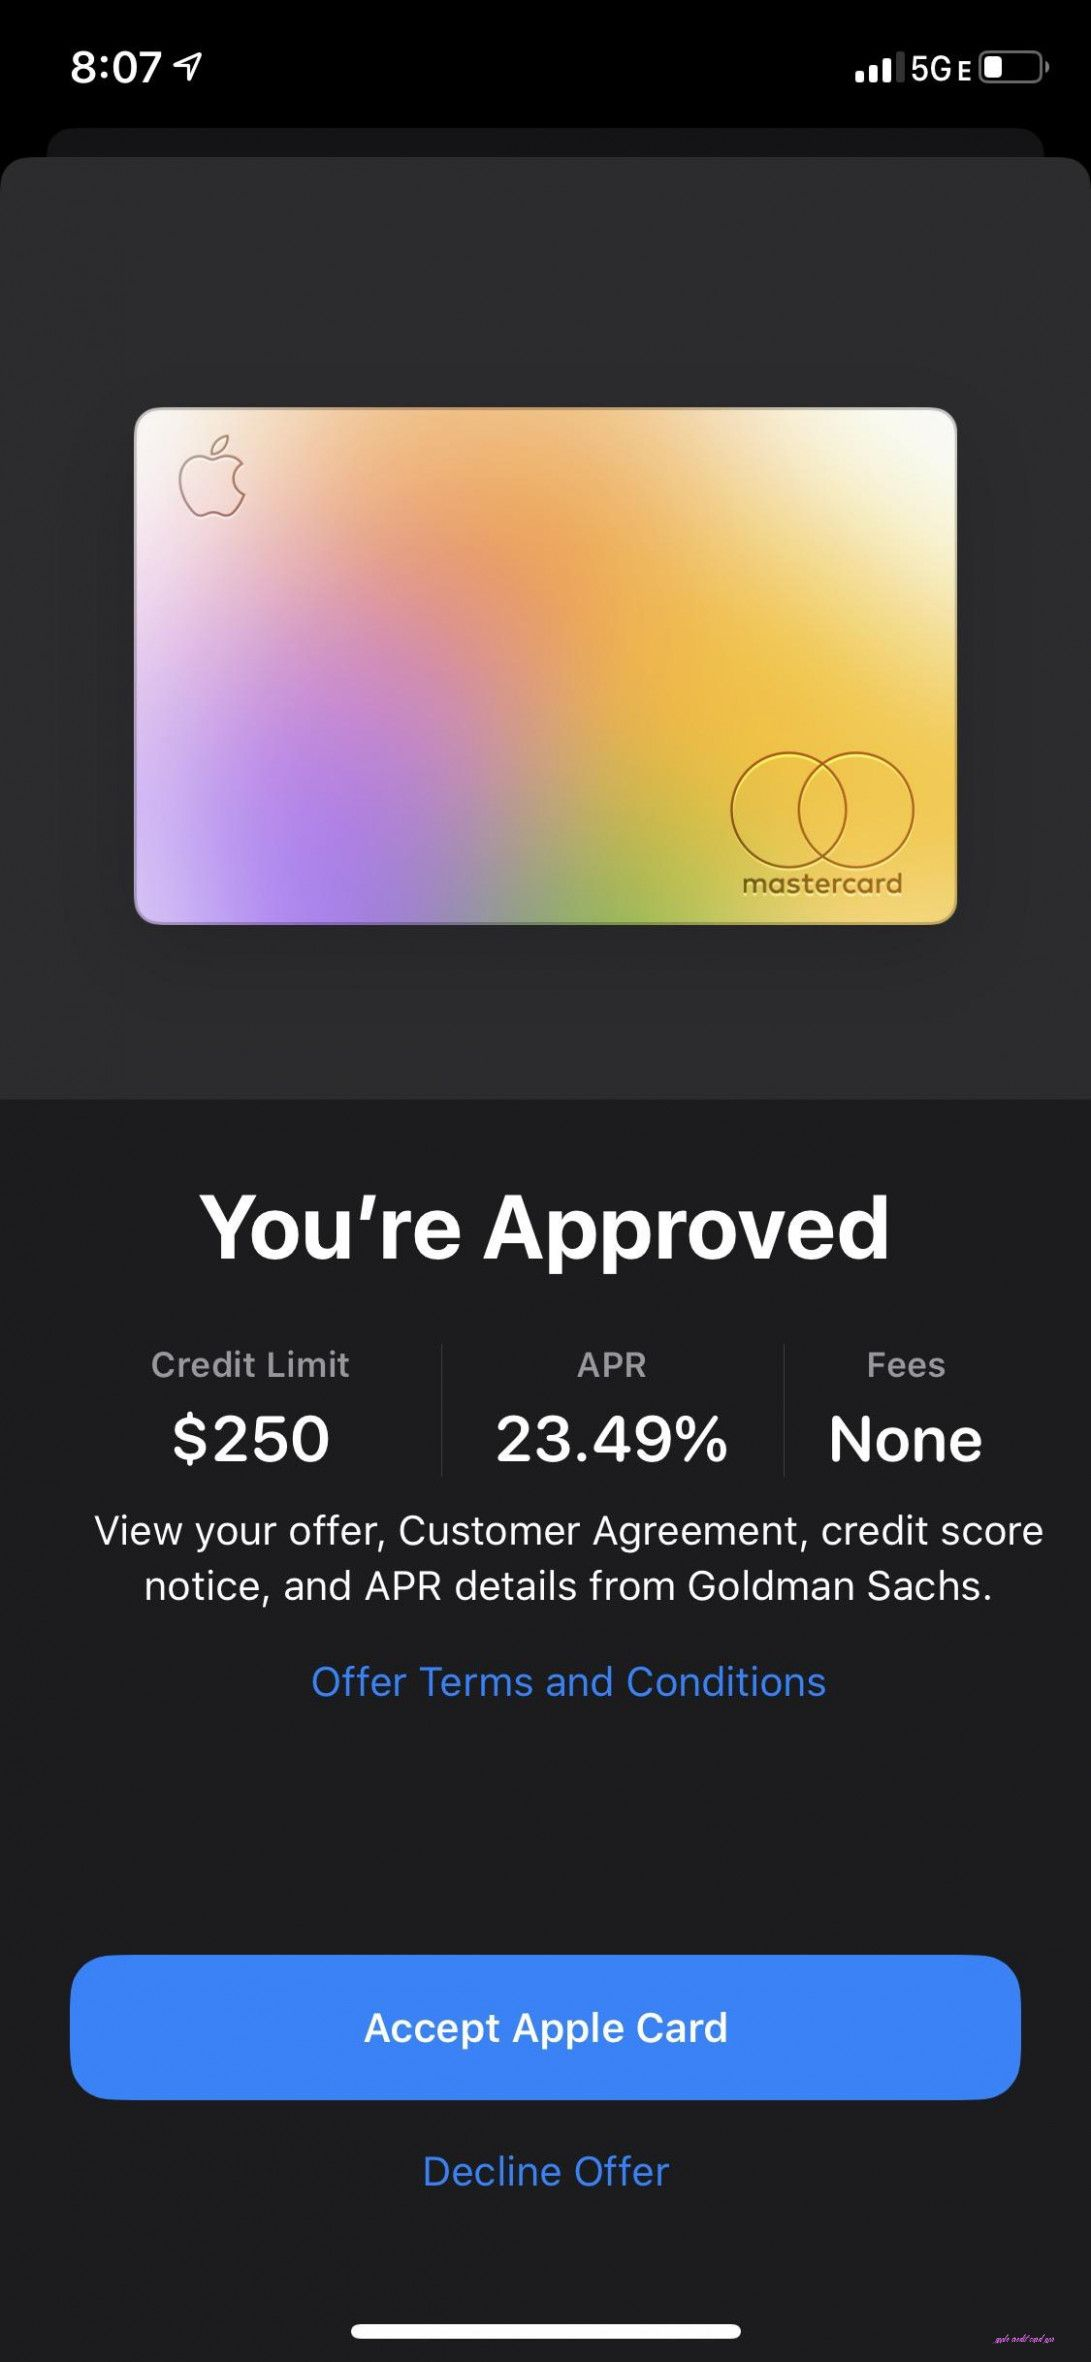 13 Common Misconceptions About Apple Credit Card Apr  apple credit